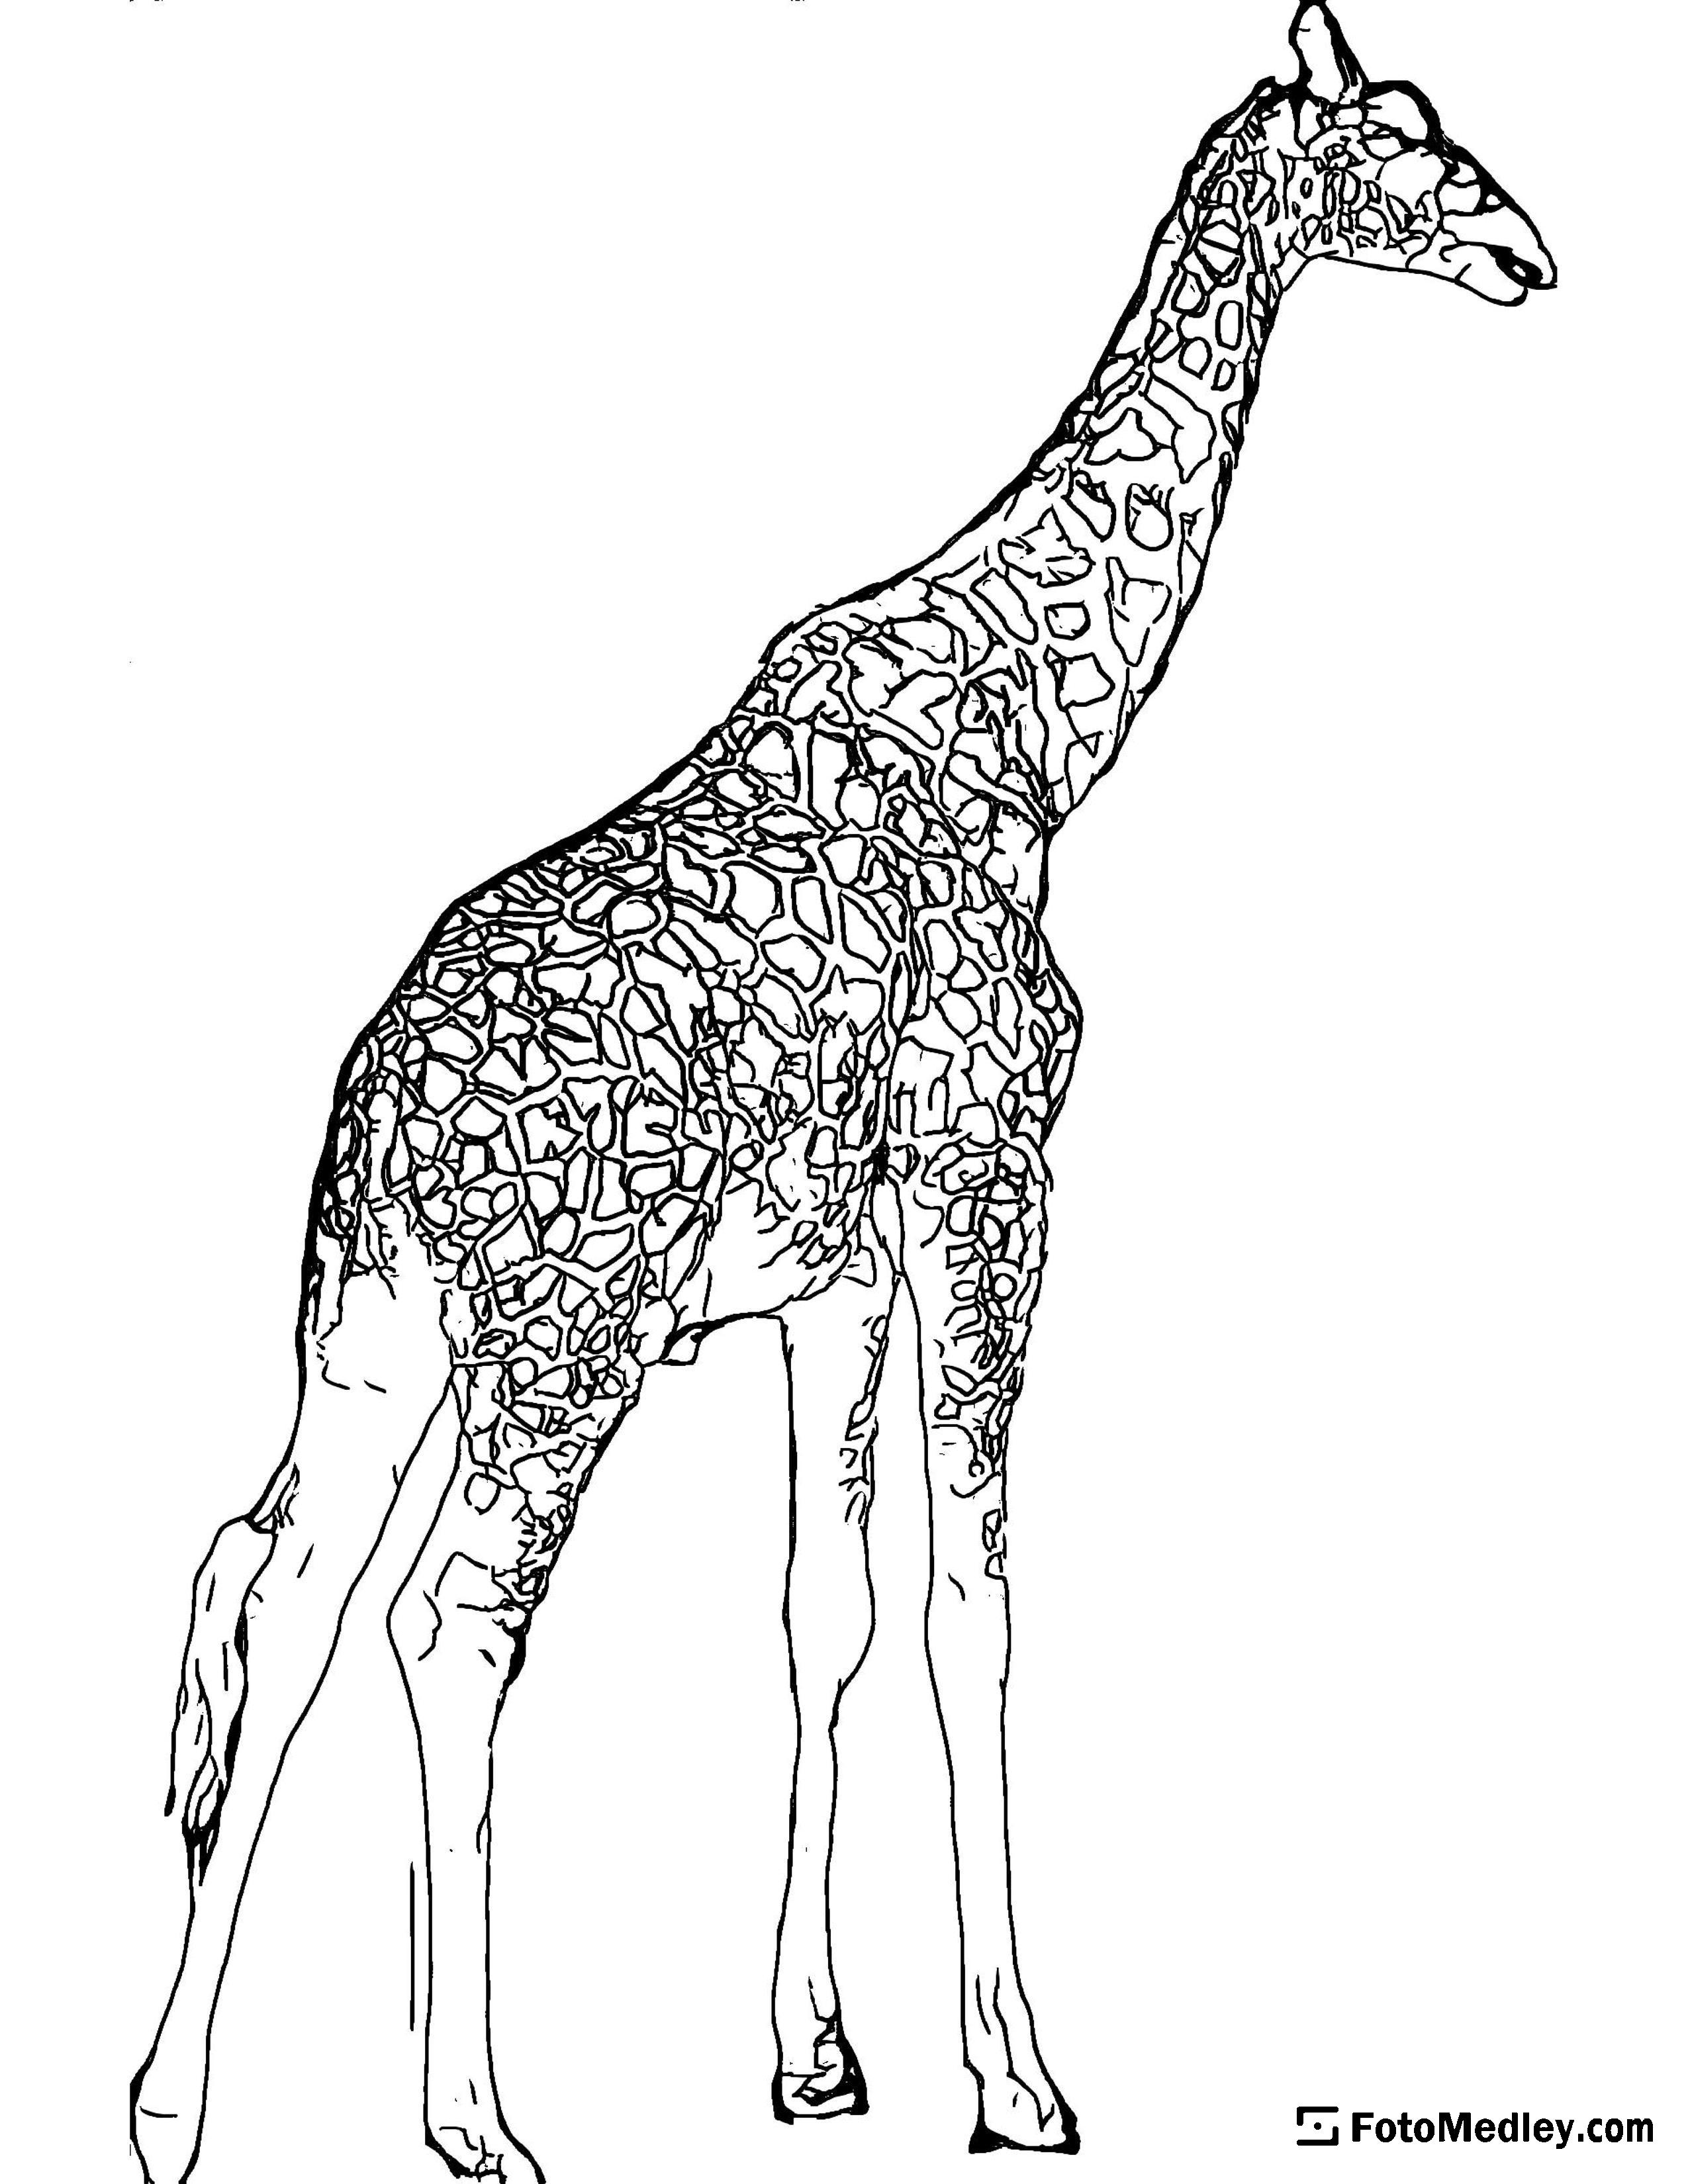 A coloring page of tall spotted giraffe.